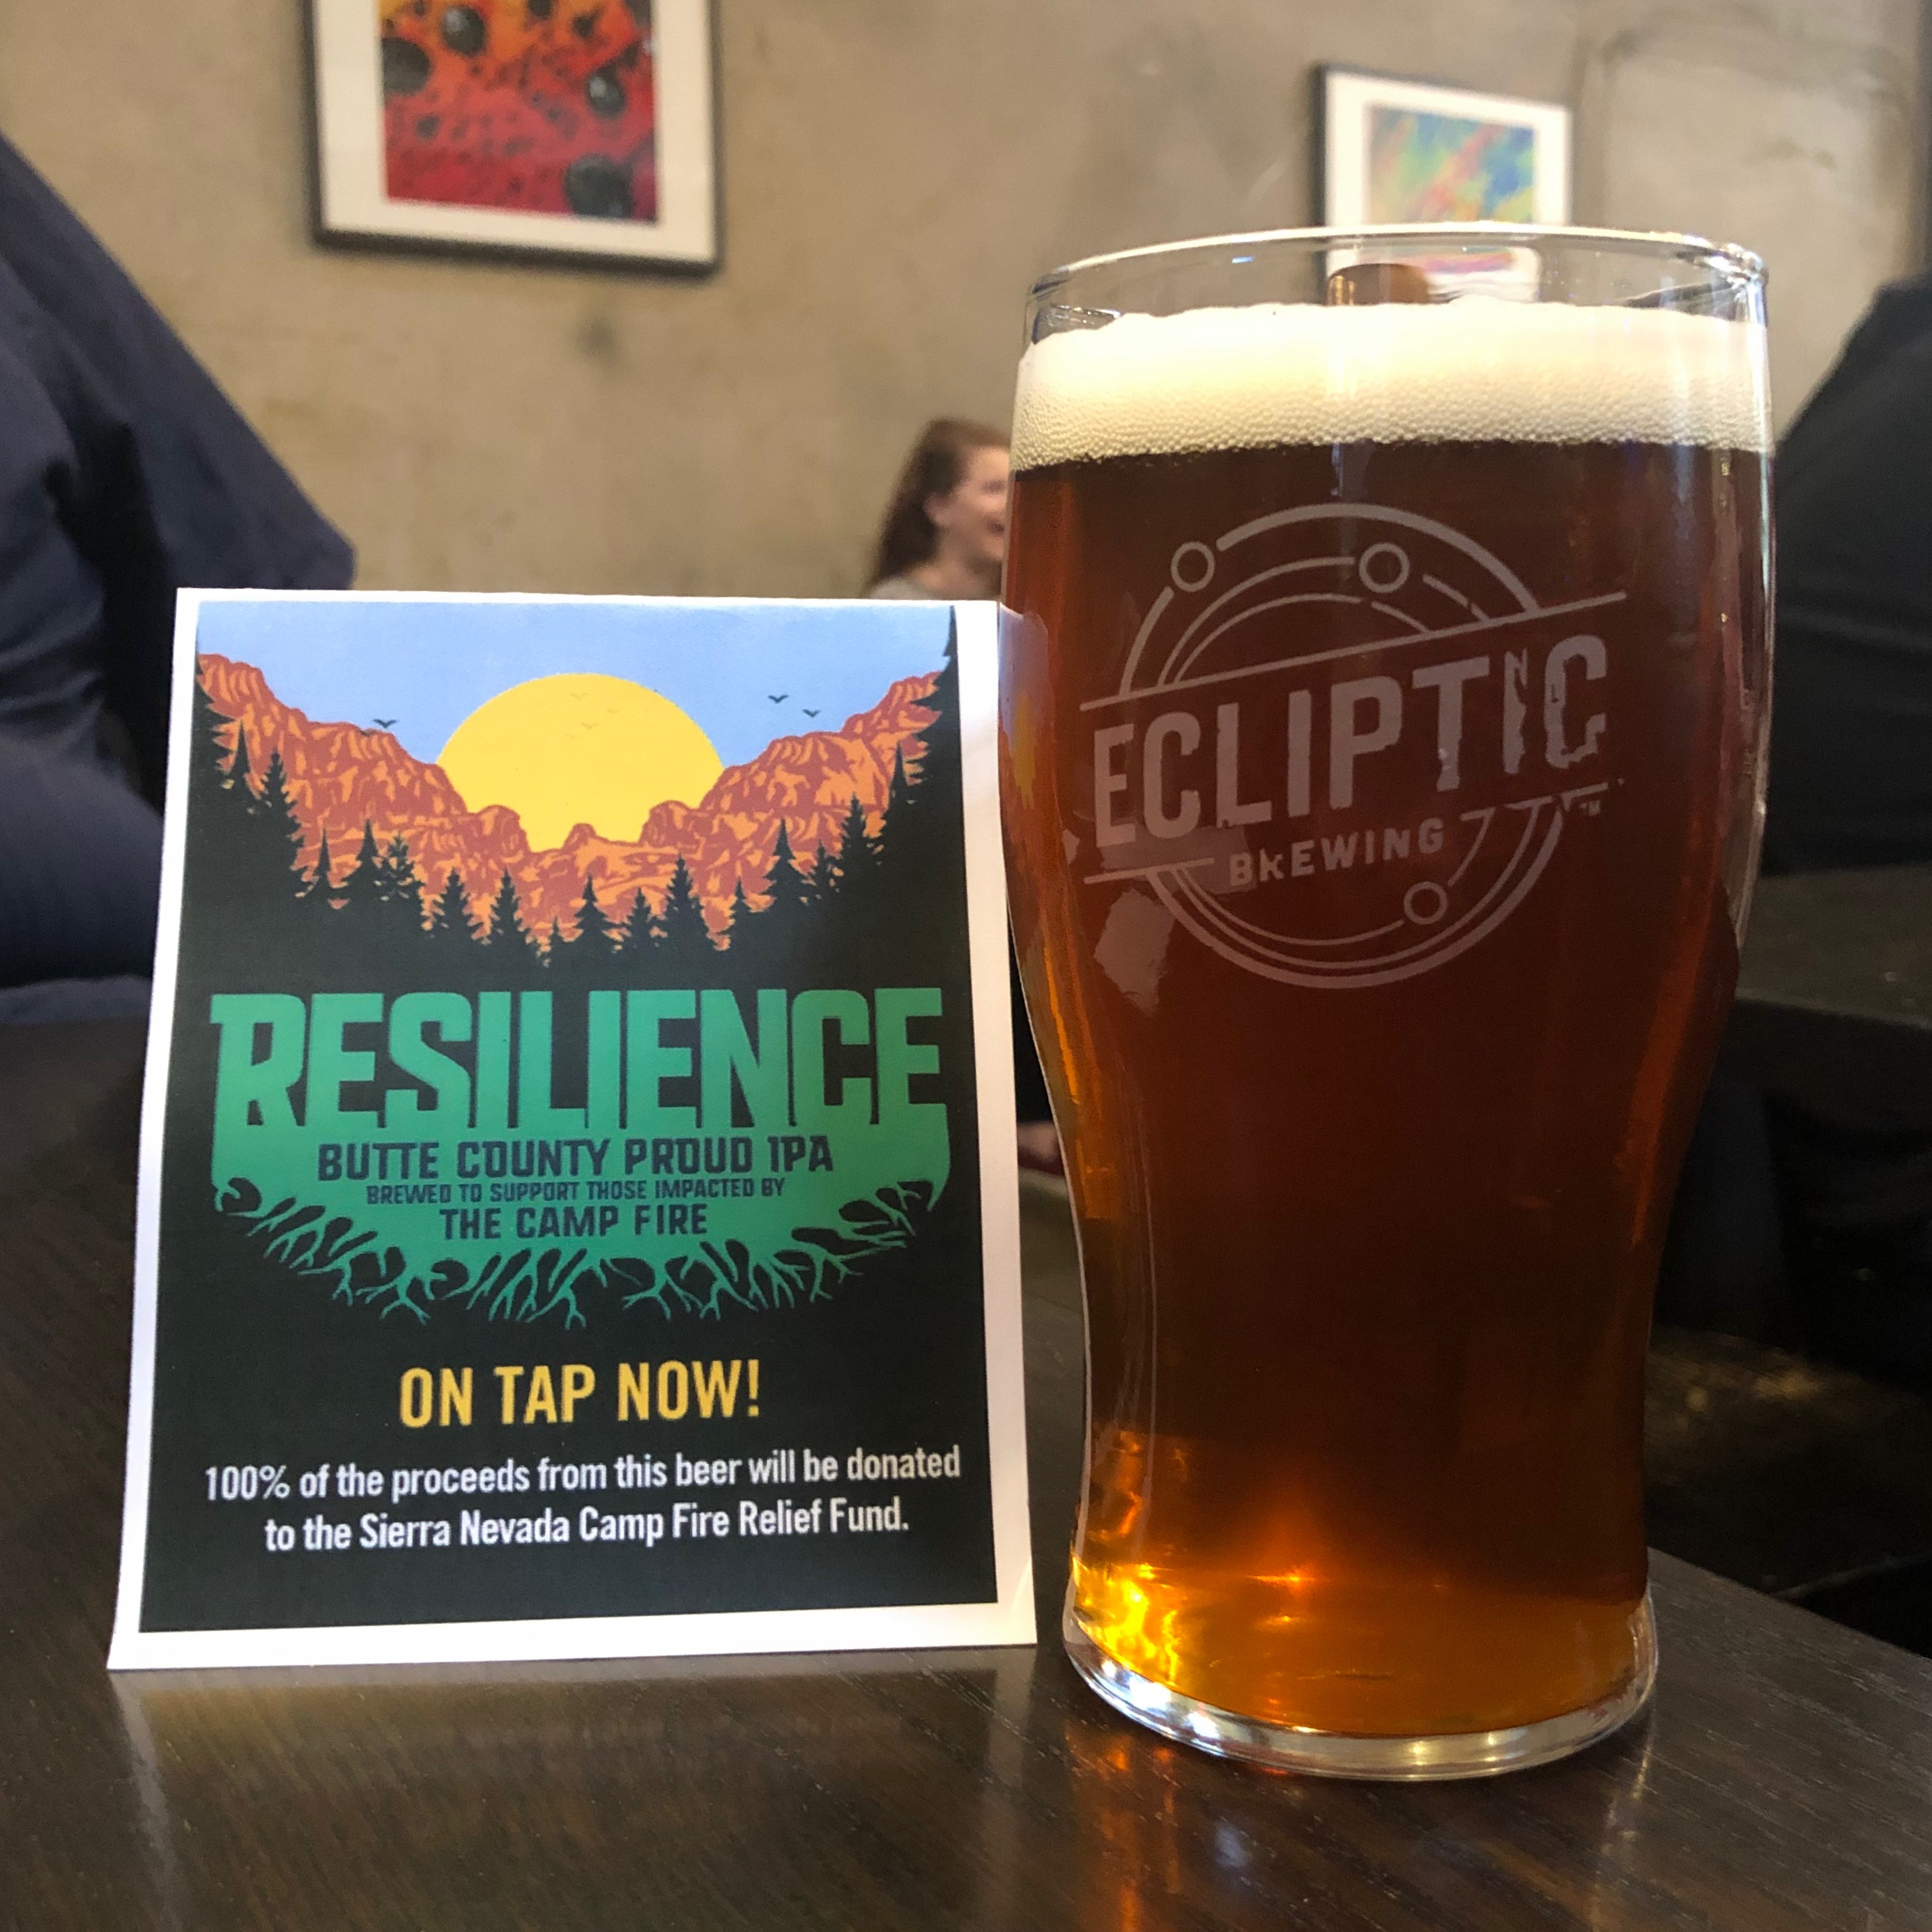 Ecliptic Brewing Resilience IPA poured at its release on Saturday, December 15, 2018.